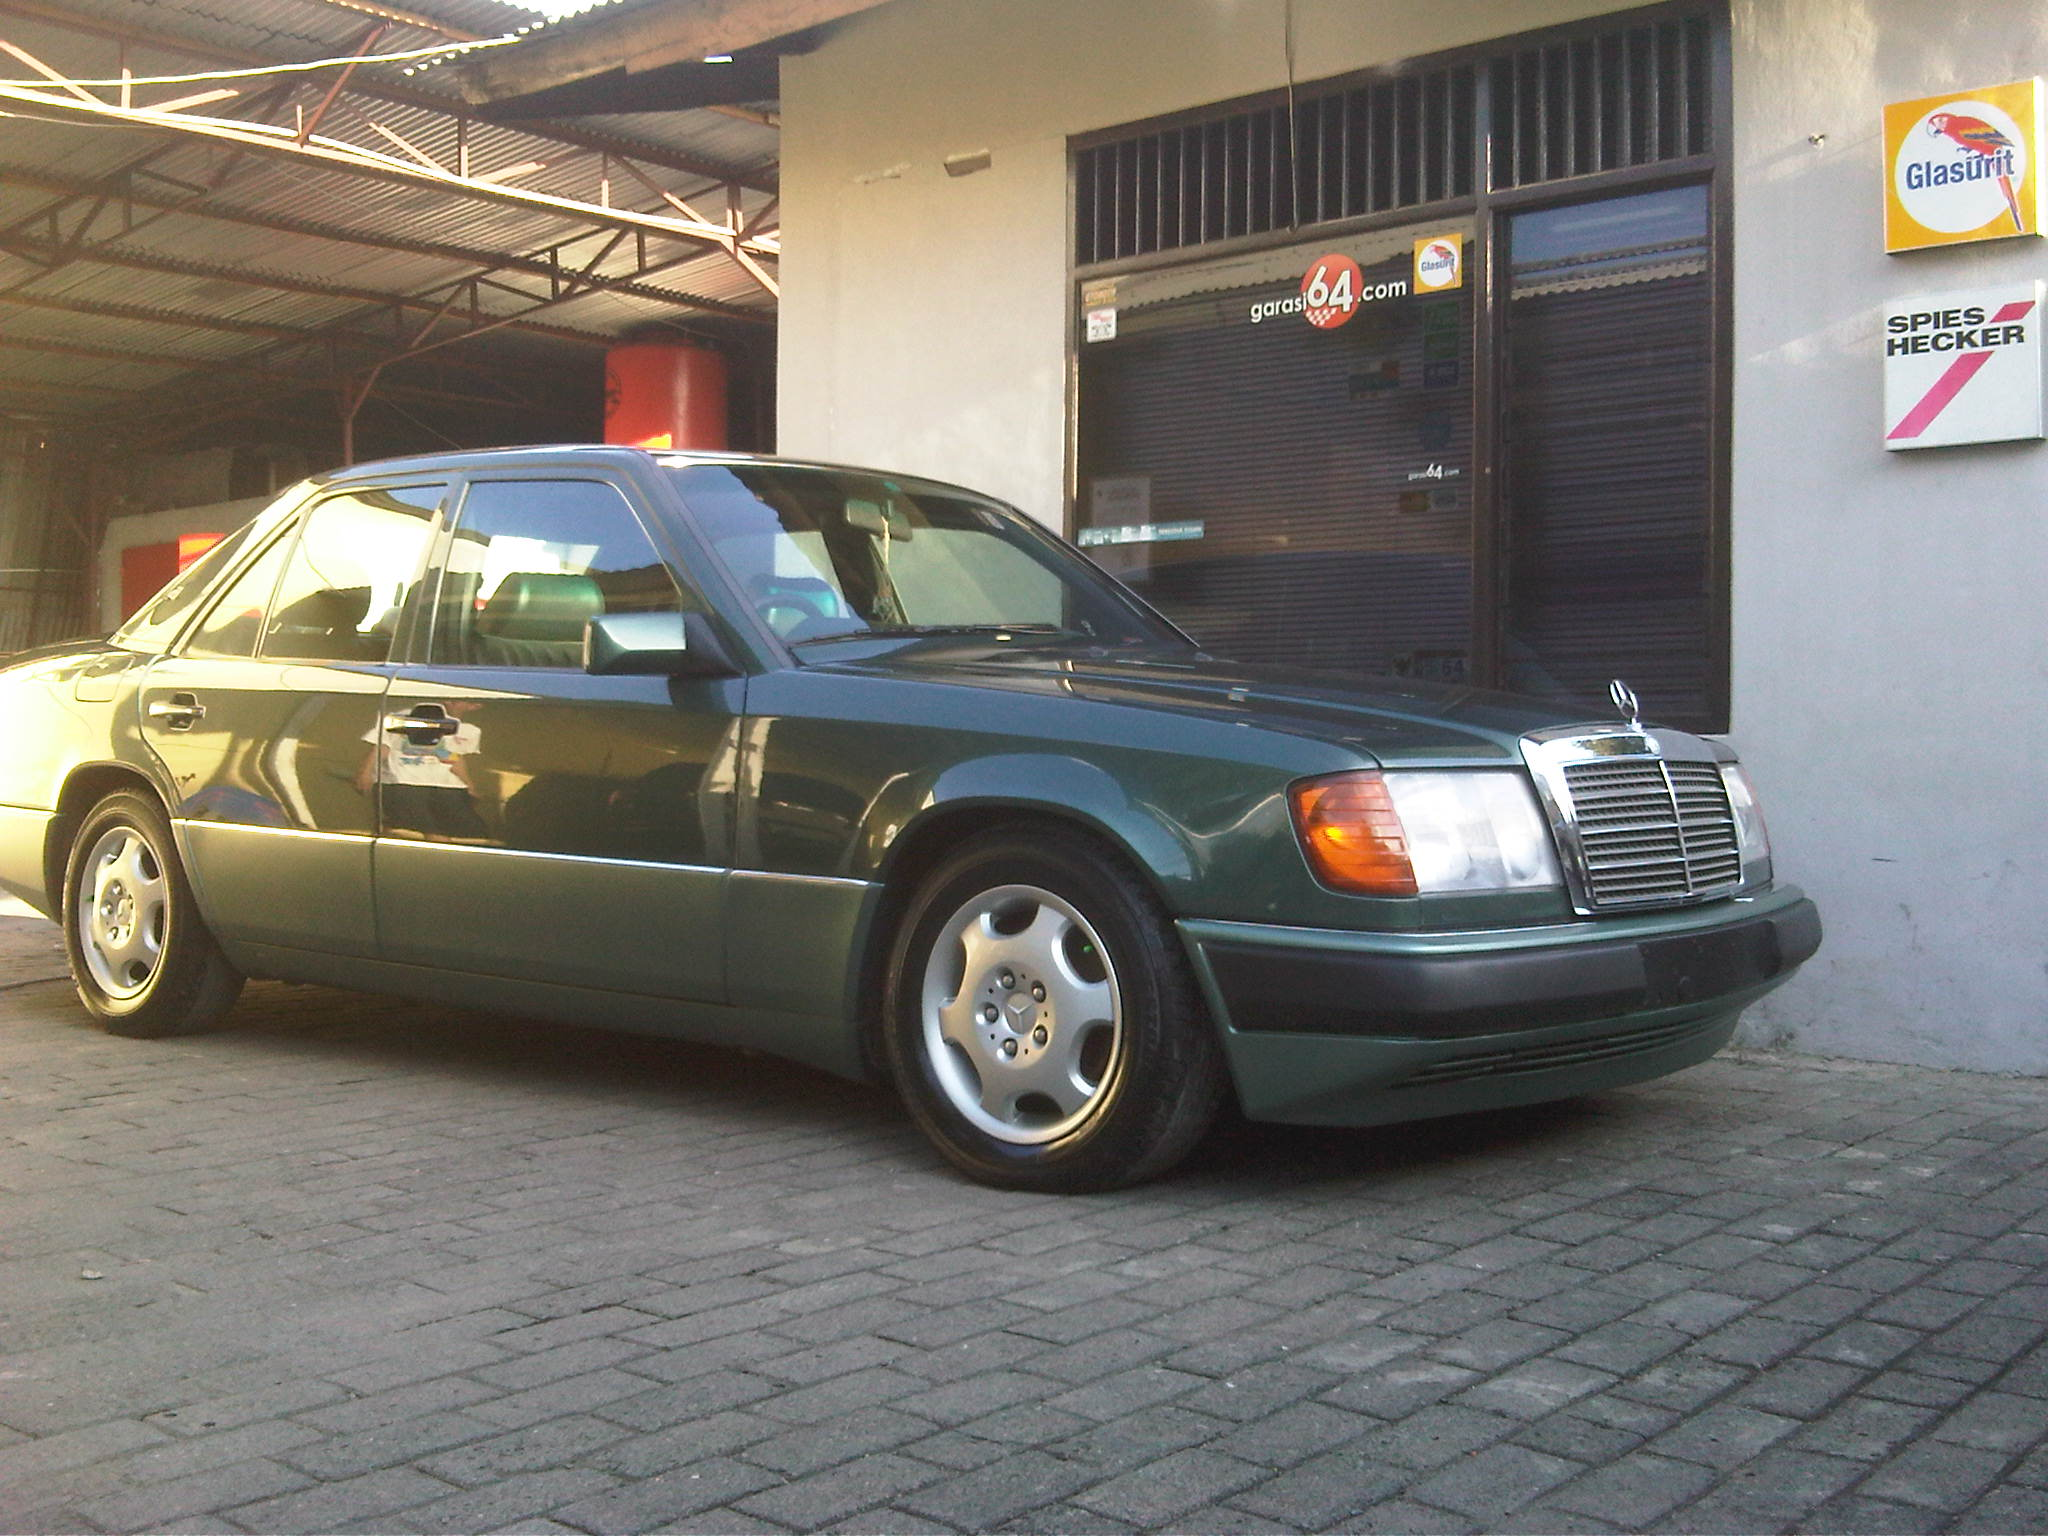 1991 mercedes benz 230e w124 garasi 64 for Mercedes benz 230e